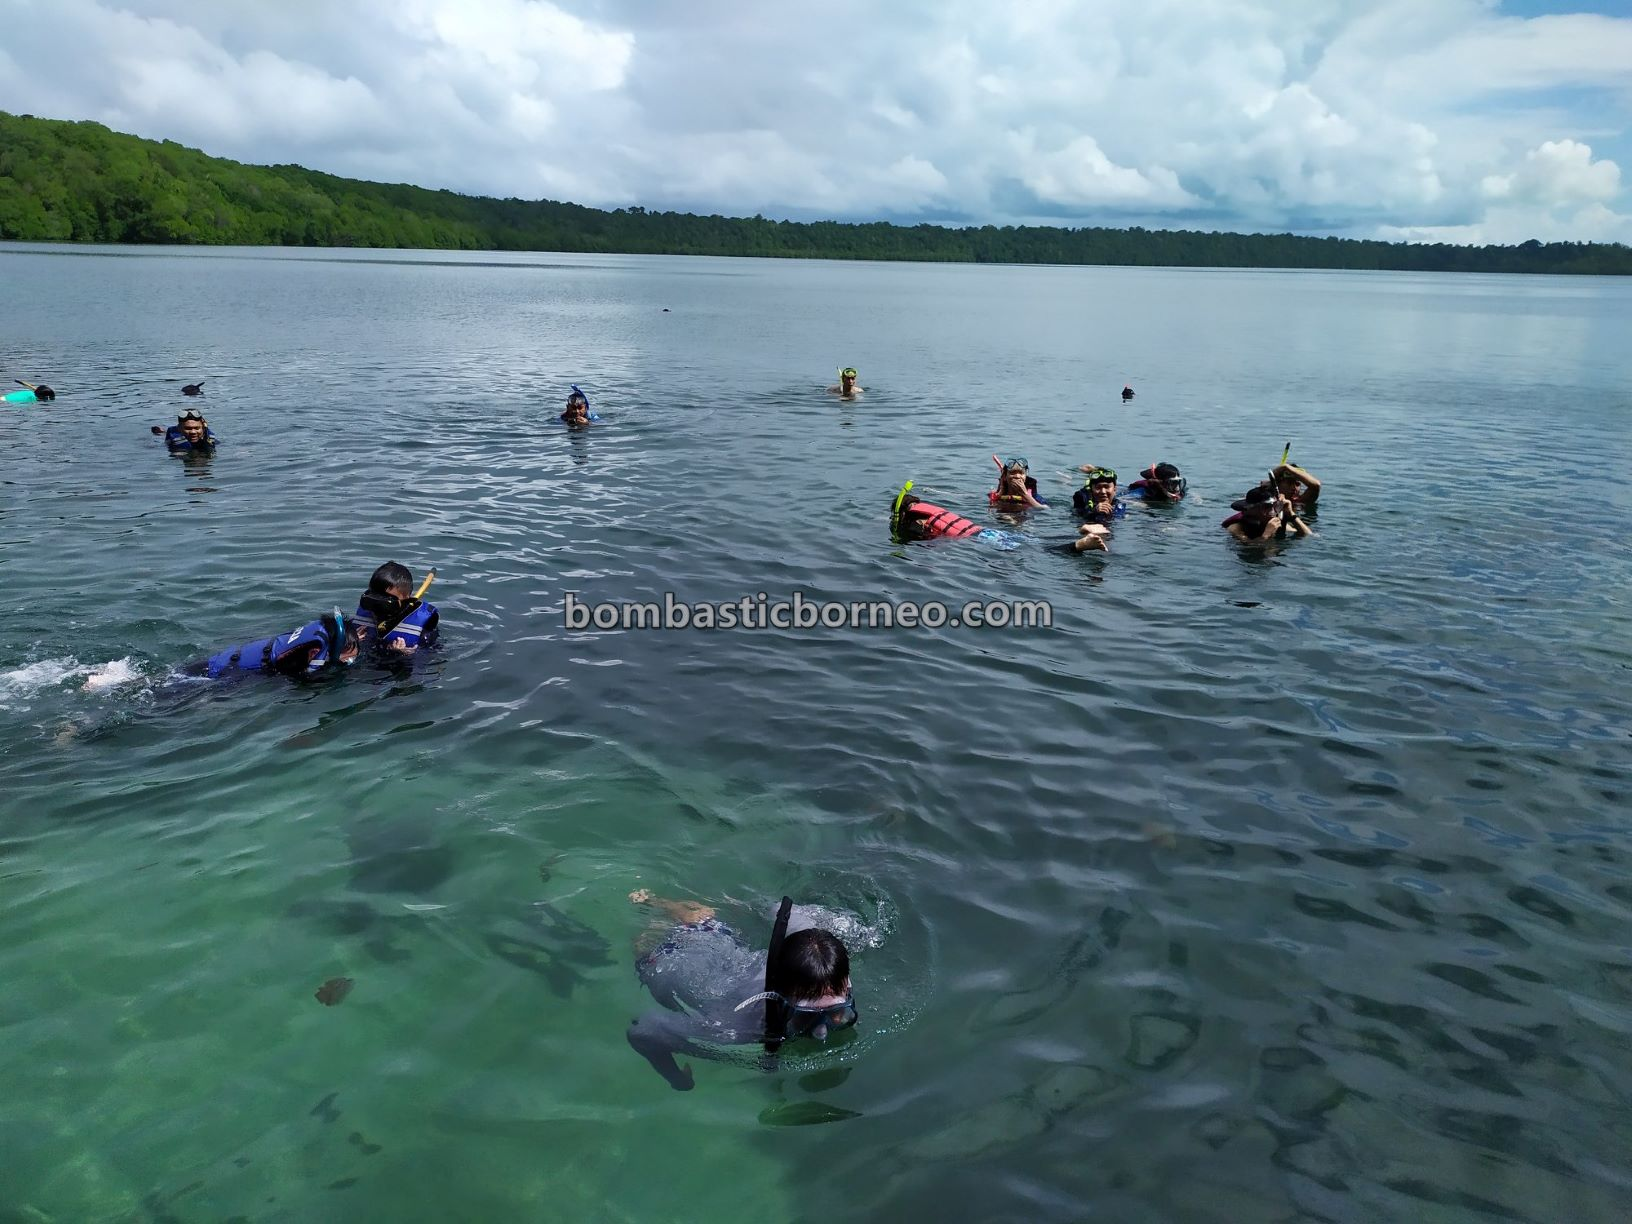 Derawan Archipelago, Danau Ubur-Ubur, Stingless Jellyfish Lake, adventure, nature, outdoor, backpackers, diving, Berau, Tourist attraction, travel guide, Trans Borneo, 穿越婆罗洲印尼, 东加里曼丹旅游景点, 卡卡班岛水母天堂,